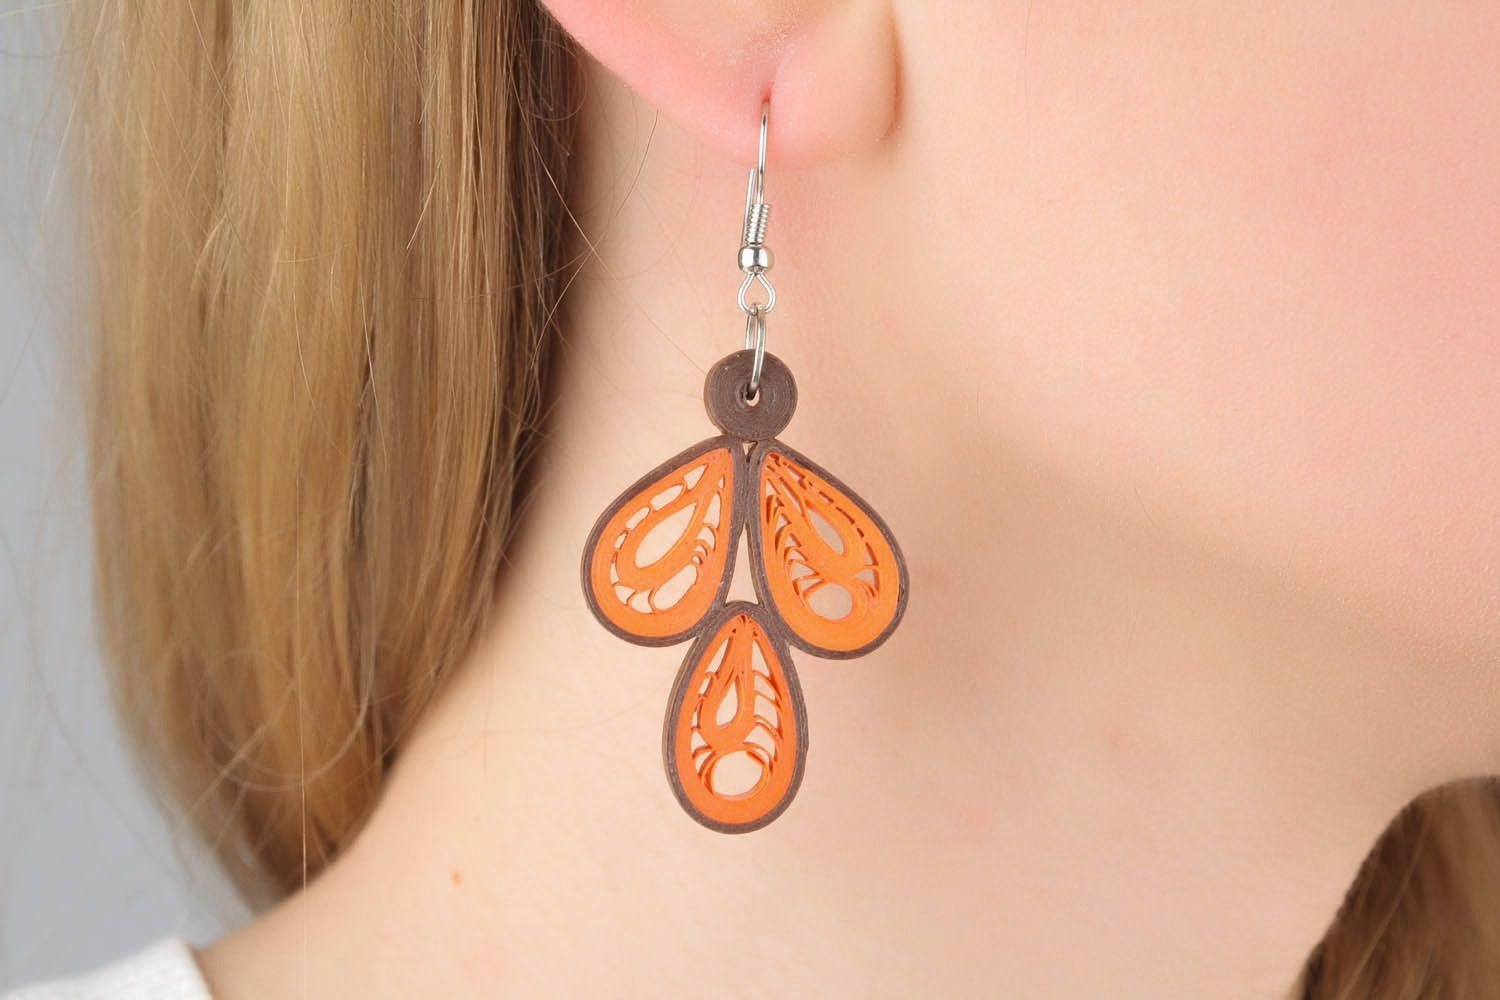 Earrings with pattern photo 1